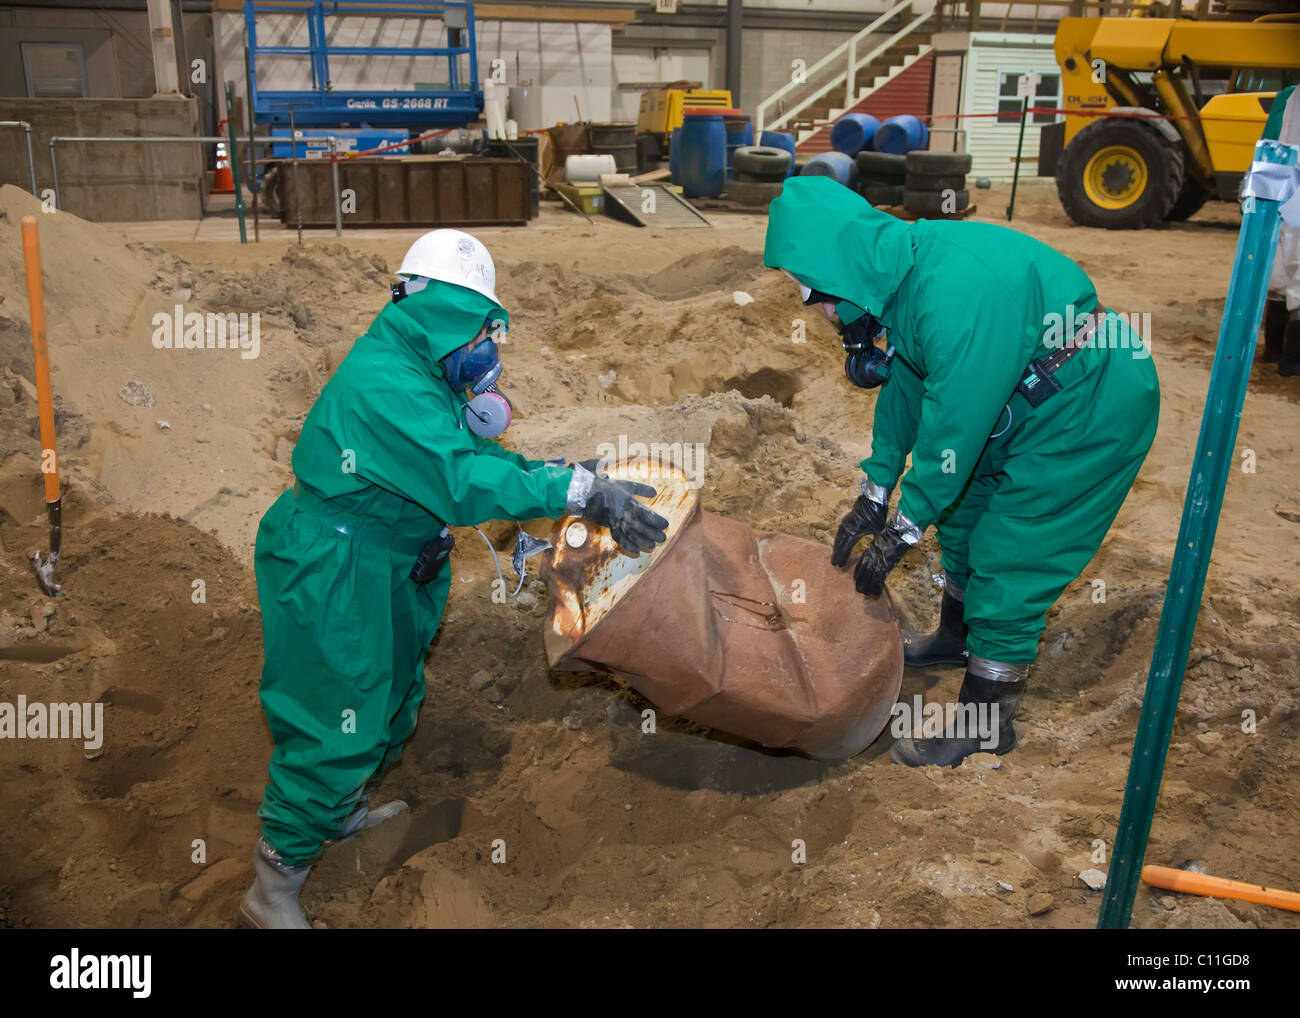 Job Corps Trainees Learn Hazardous Waste Cleanup - Stock Image